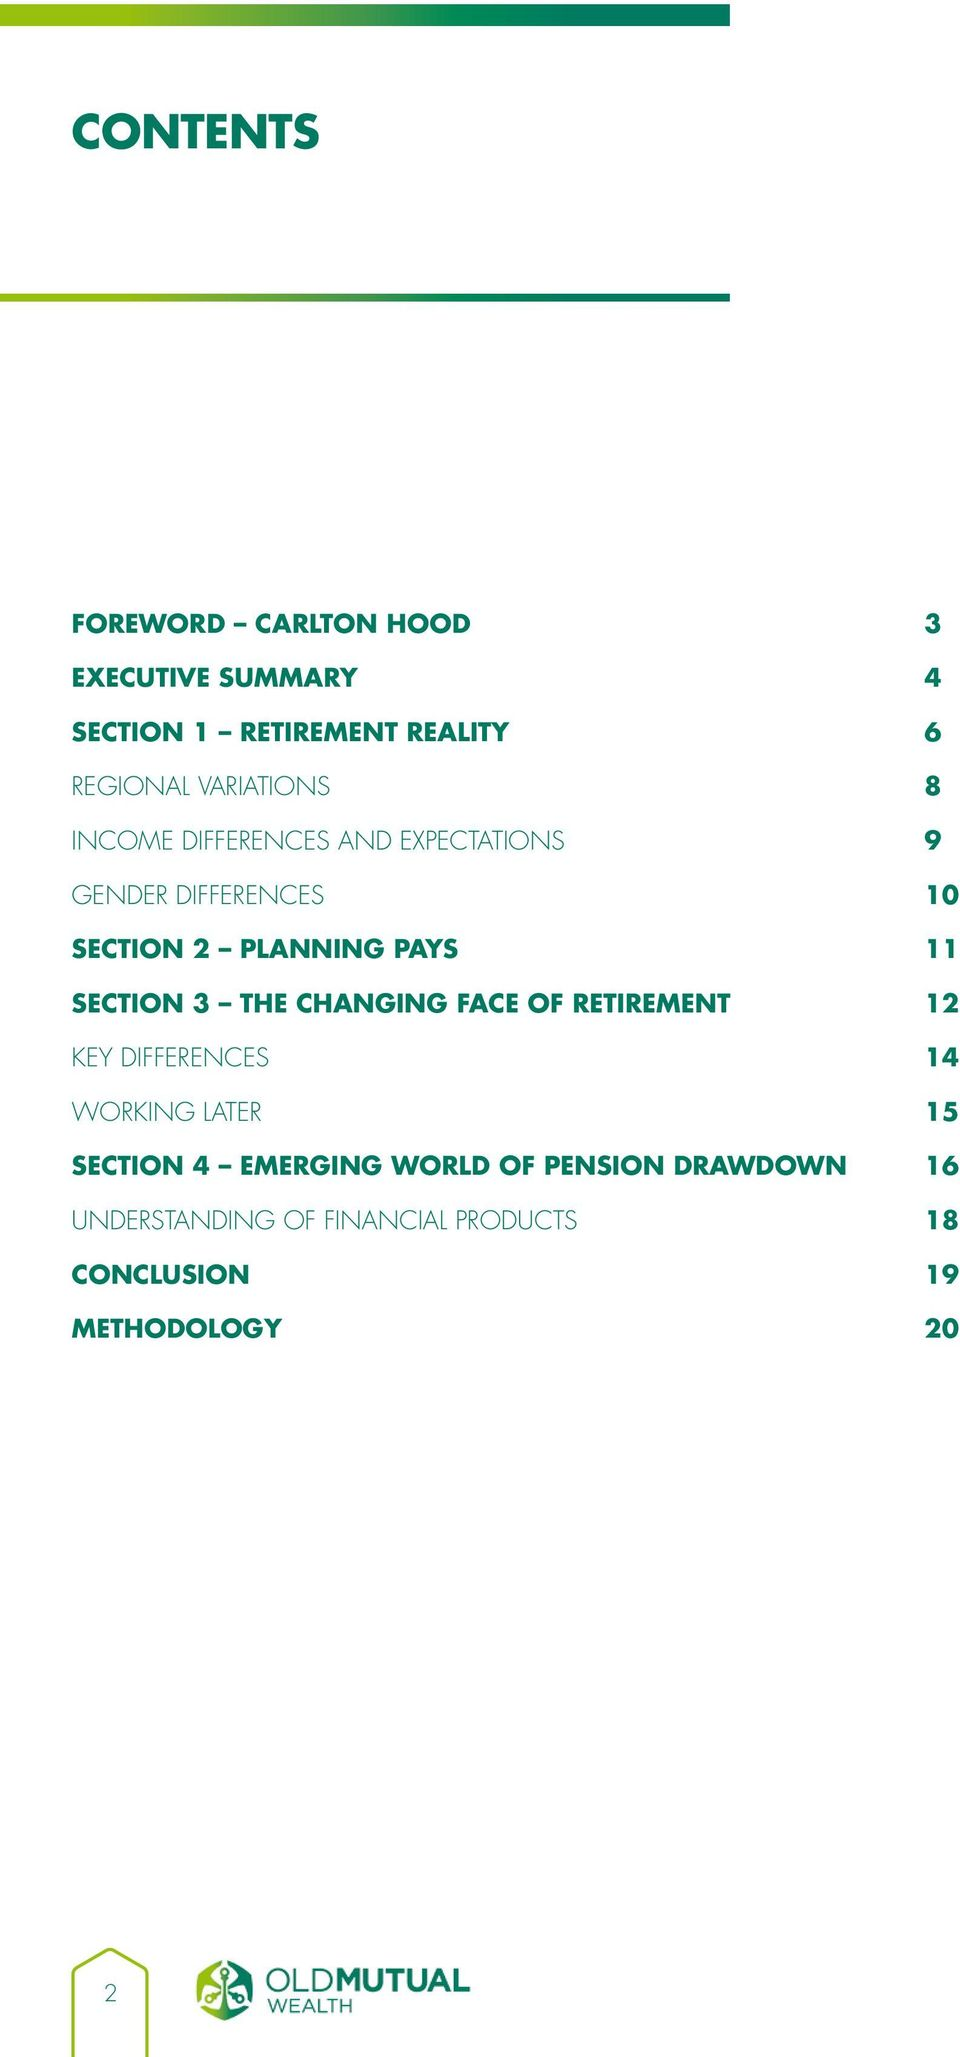 11 Section 3 The changing face of retirement 12 Key differences 14 Working later 15 Section 4